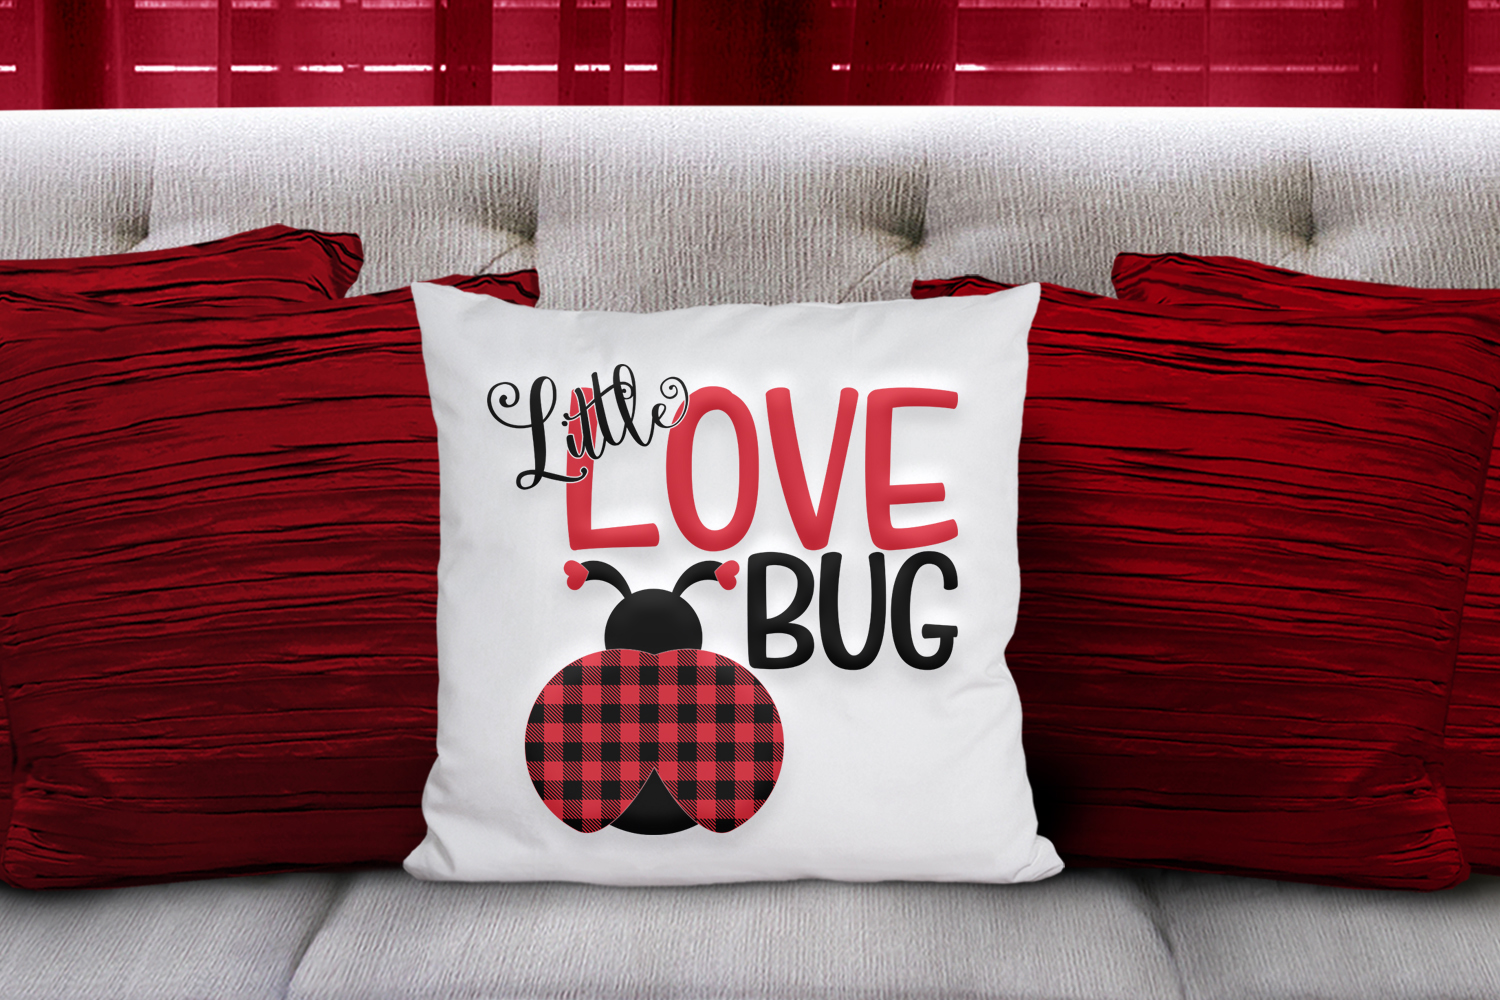 Little Love Bug - A Buffalo Plaid Valentine's Day SVG example image 2